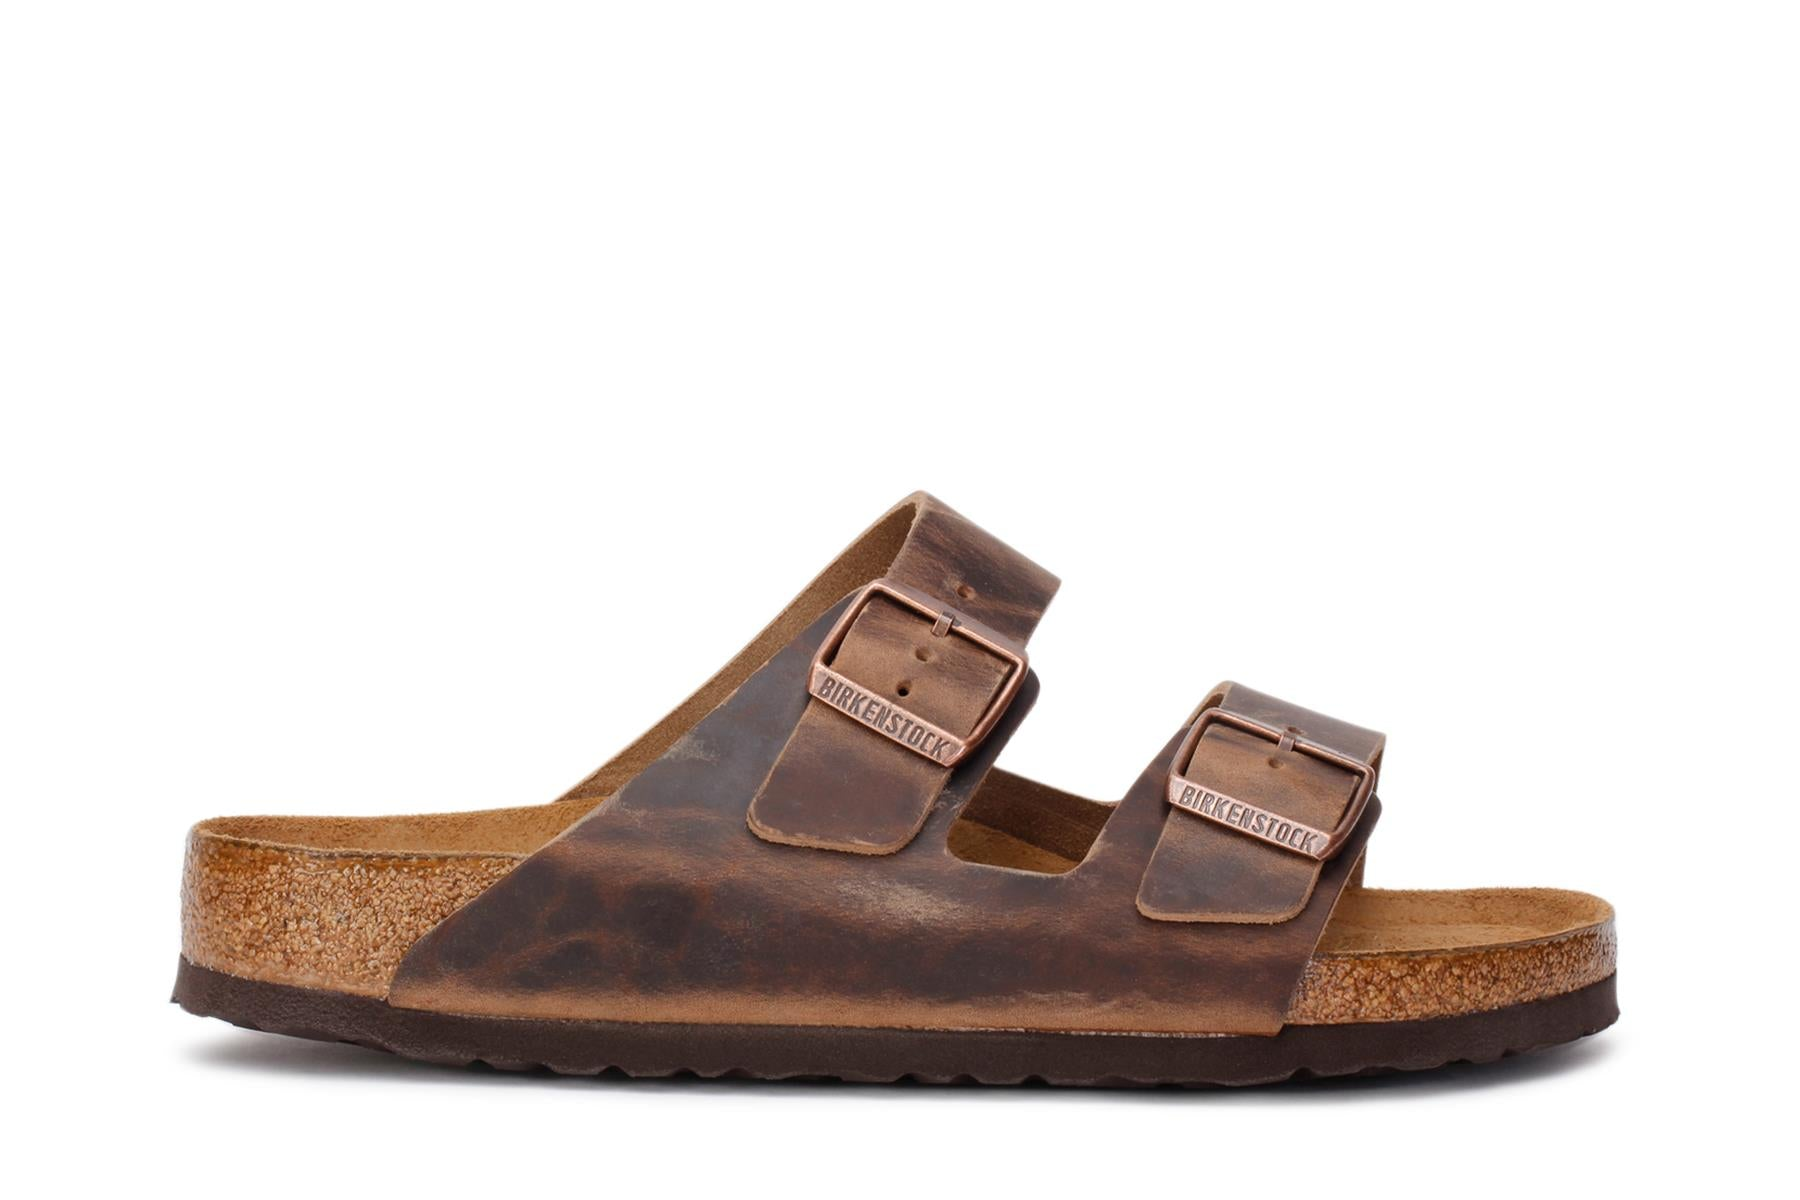 Arizona Soft Footbed Oiled Nubuck Birkenstock Sandals